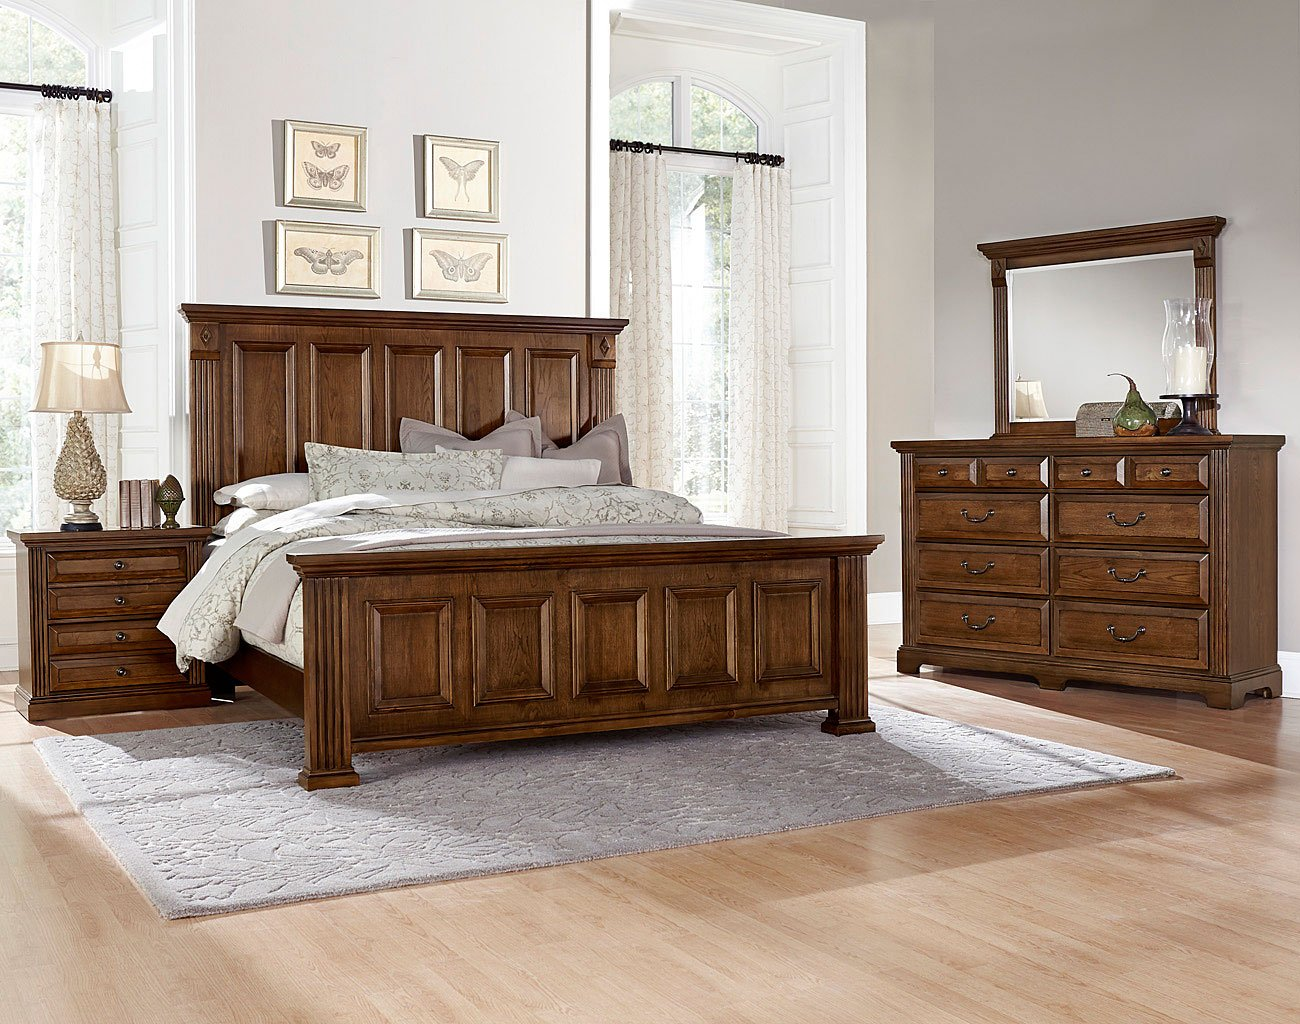 Woodlands Mansion Bedroom Set (Oak) Vaughan Bassett, 1